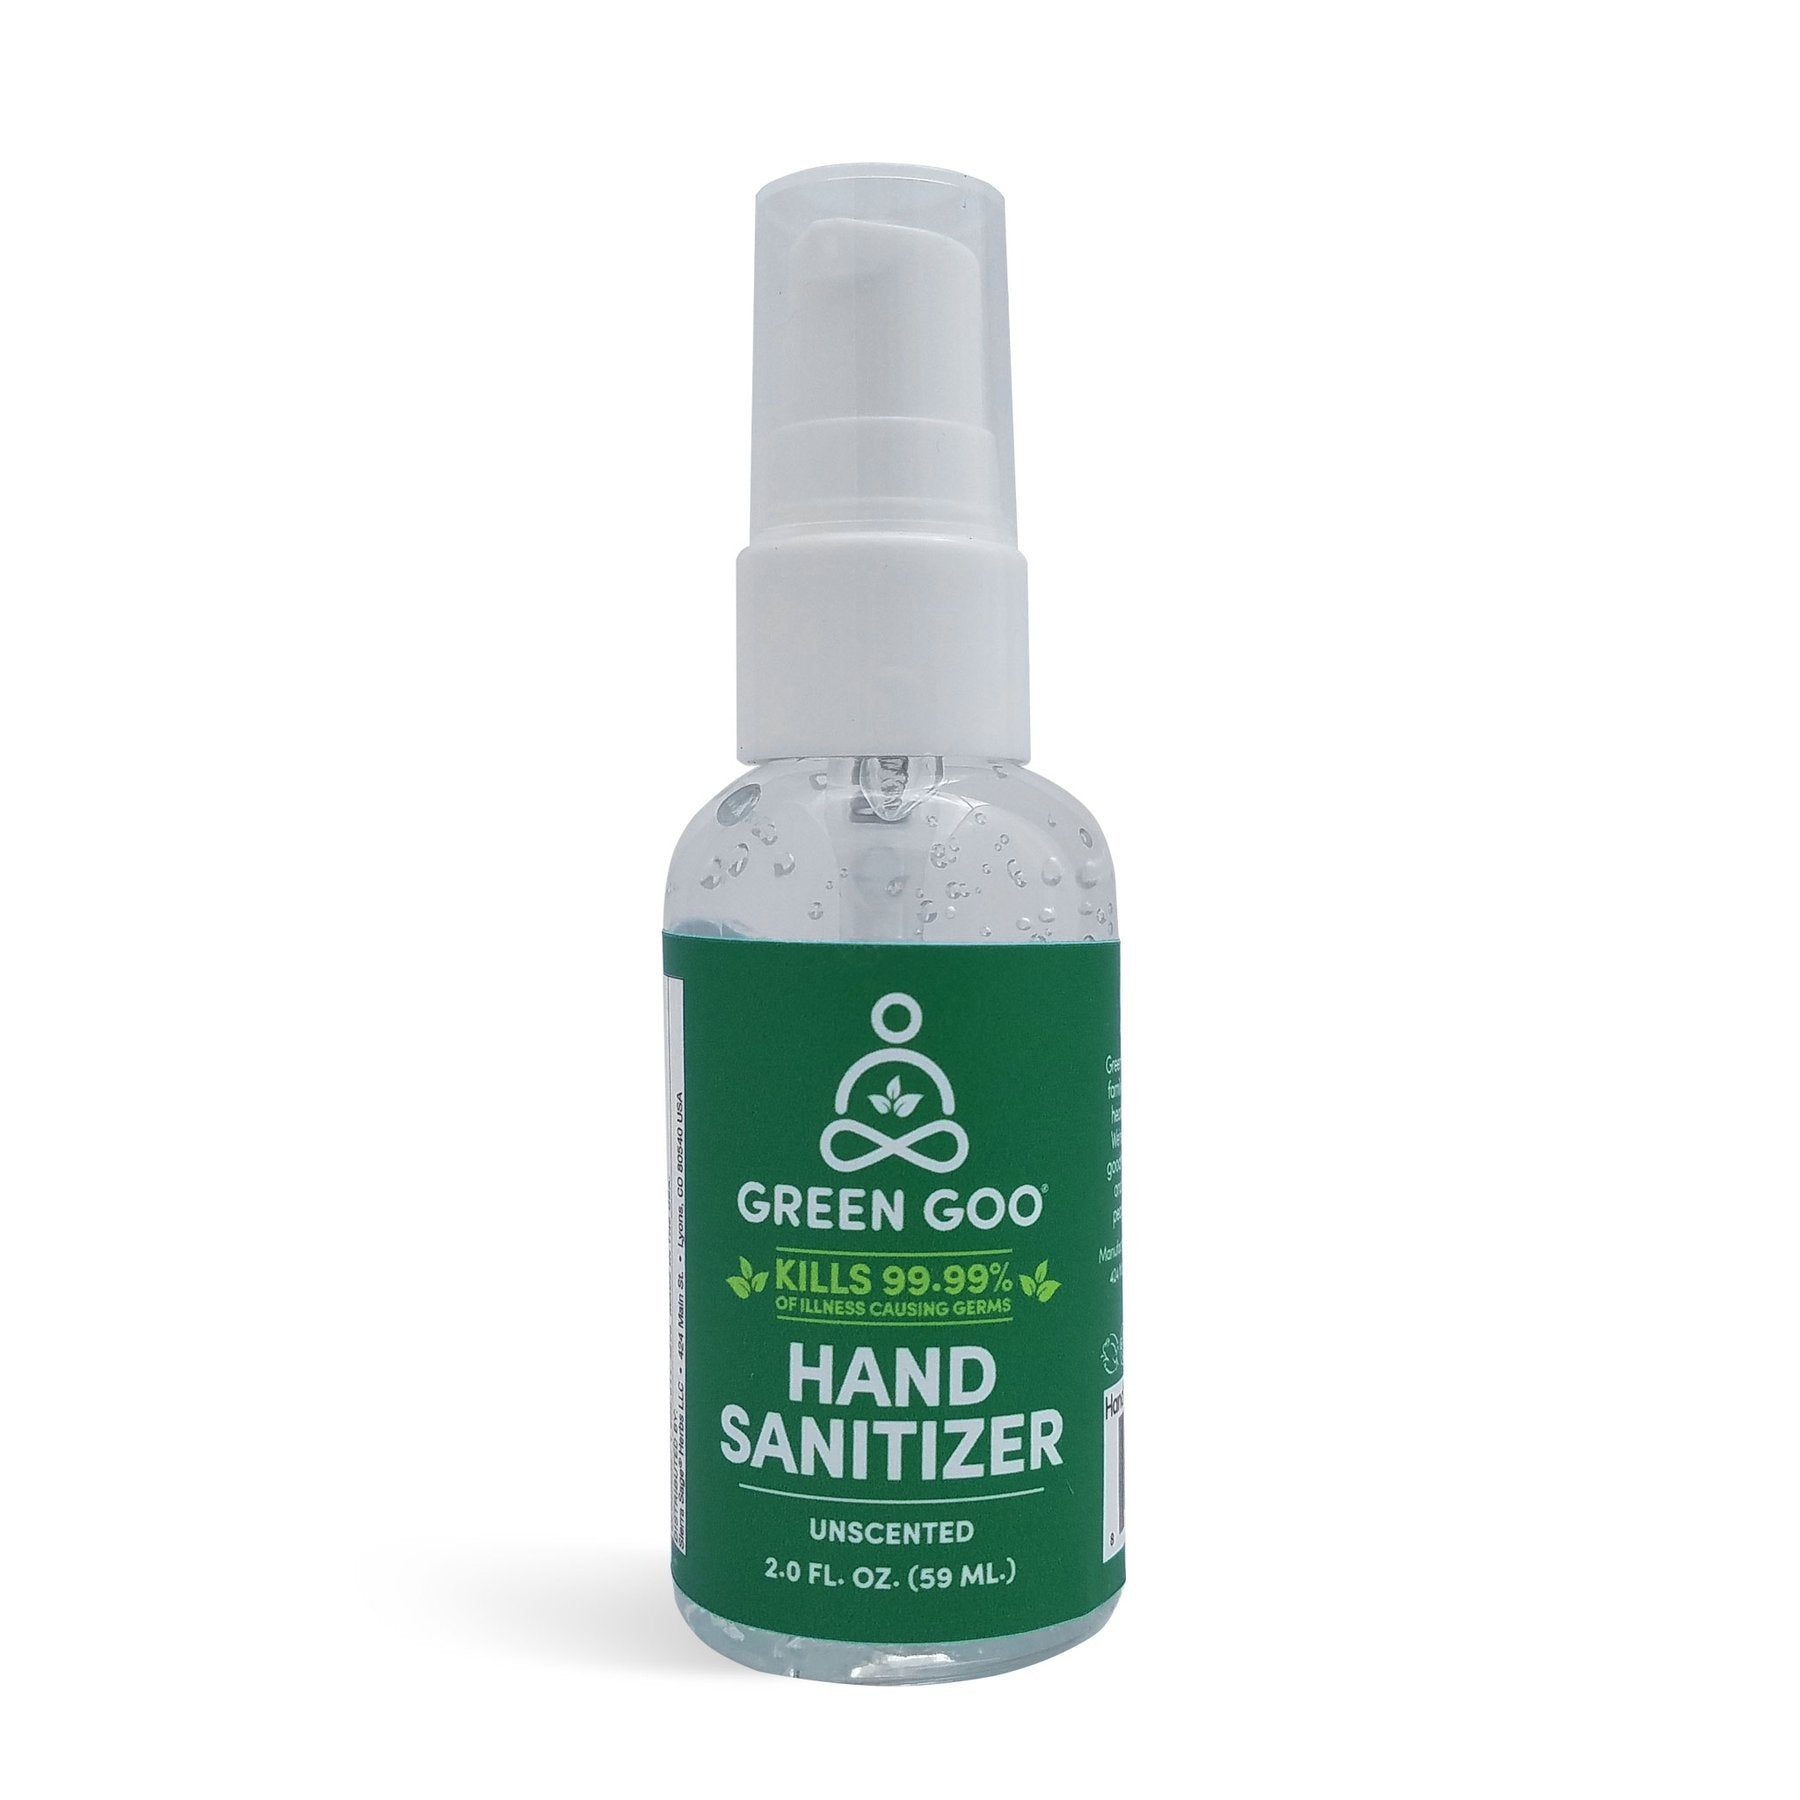 Hand Sanitizer 2 oz. Pump